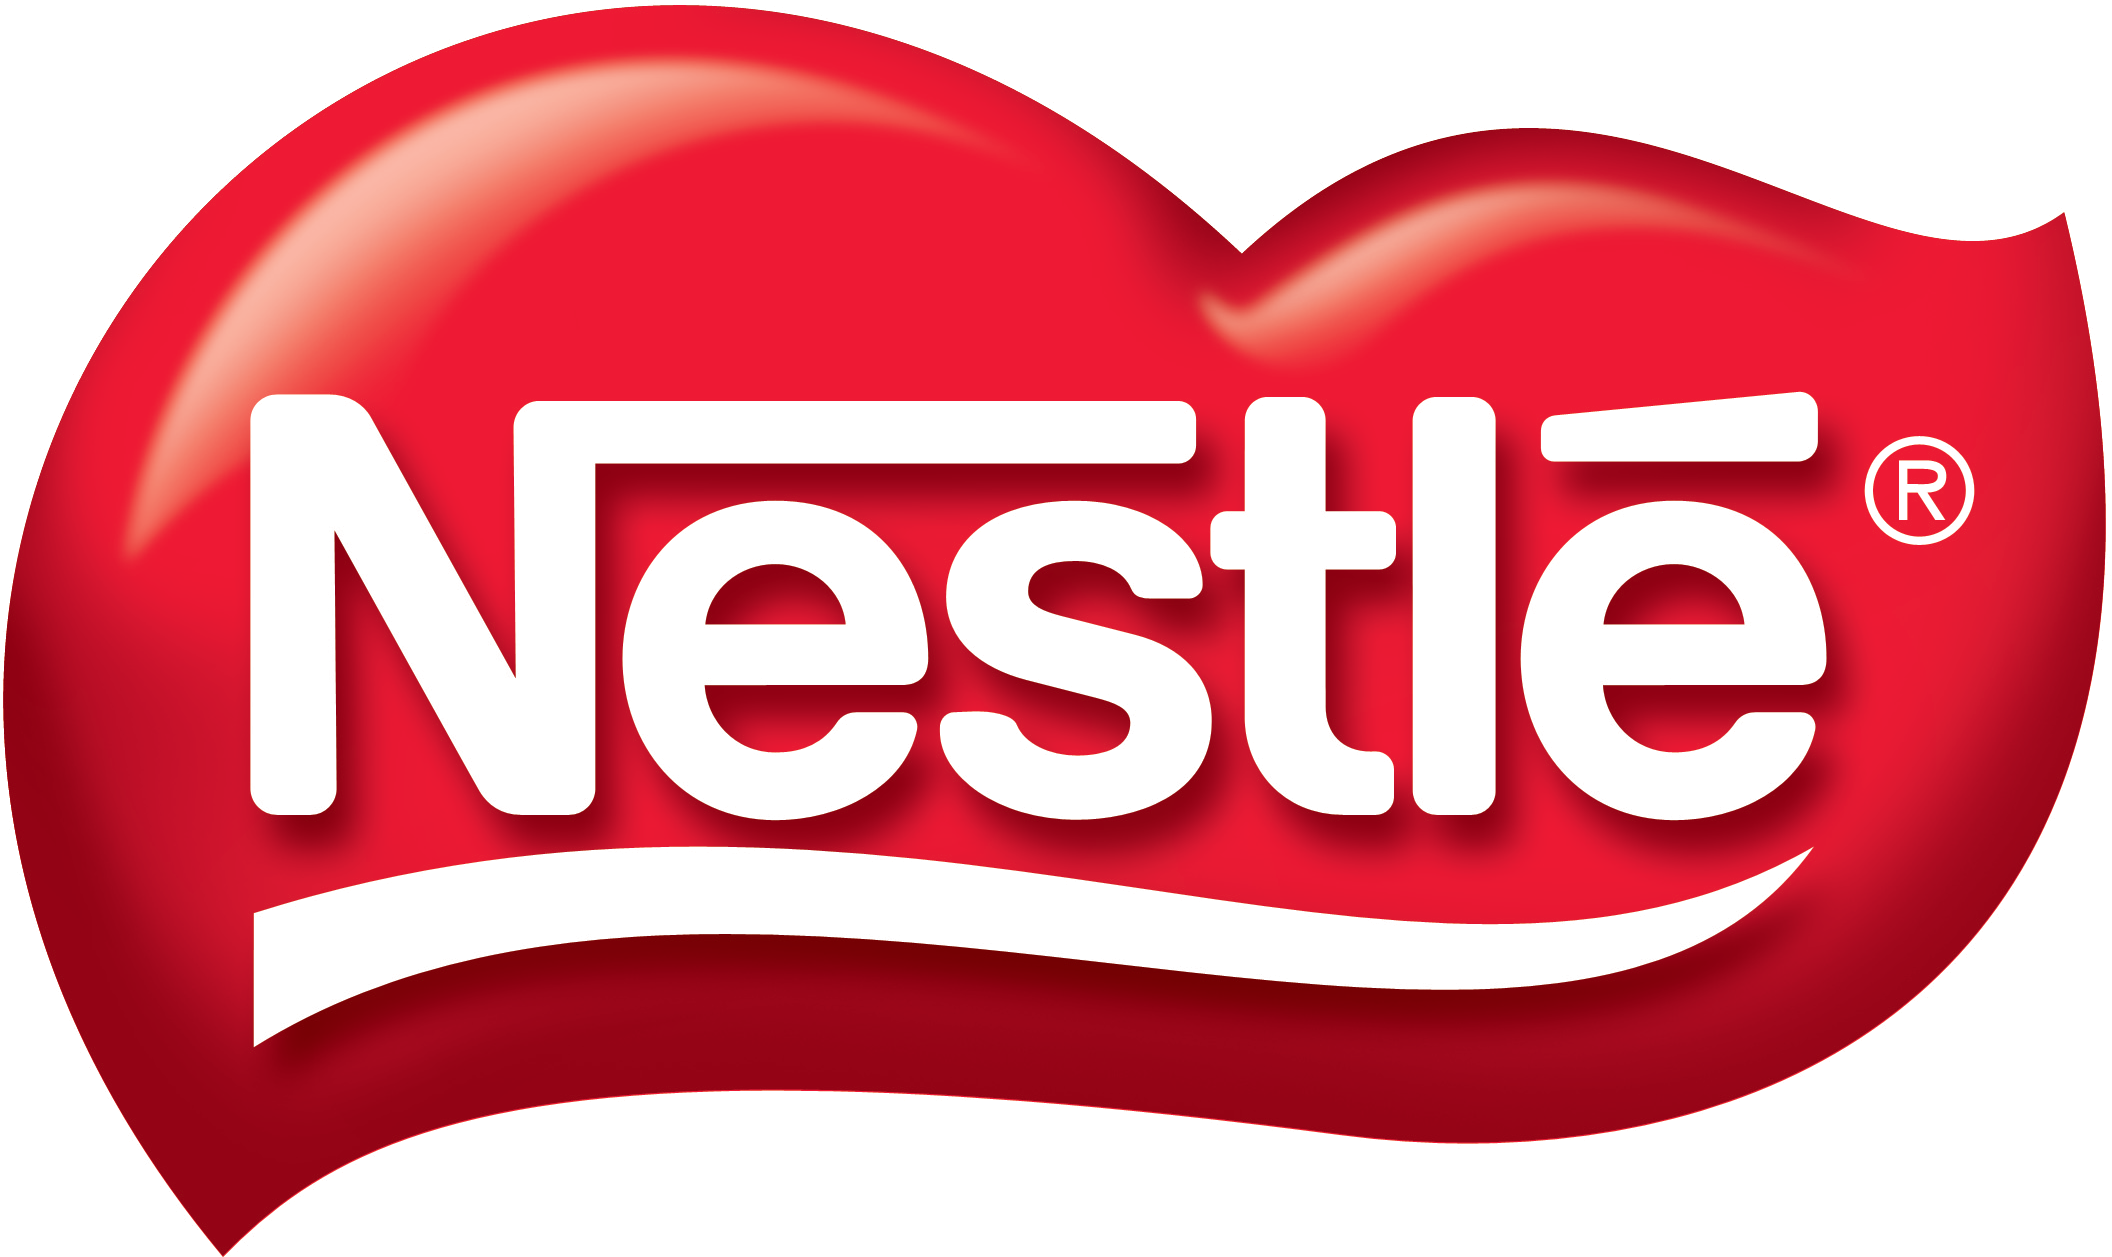 Nestlé Shit | Food technology, Chocolate company and Beverage